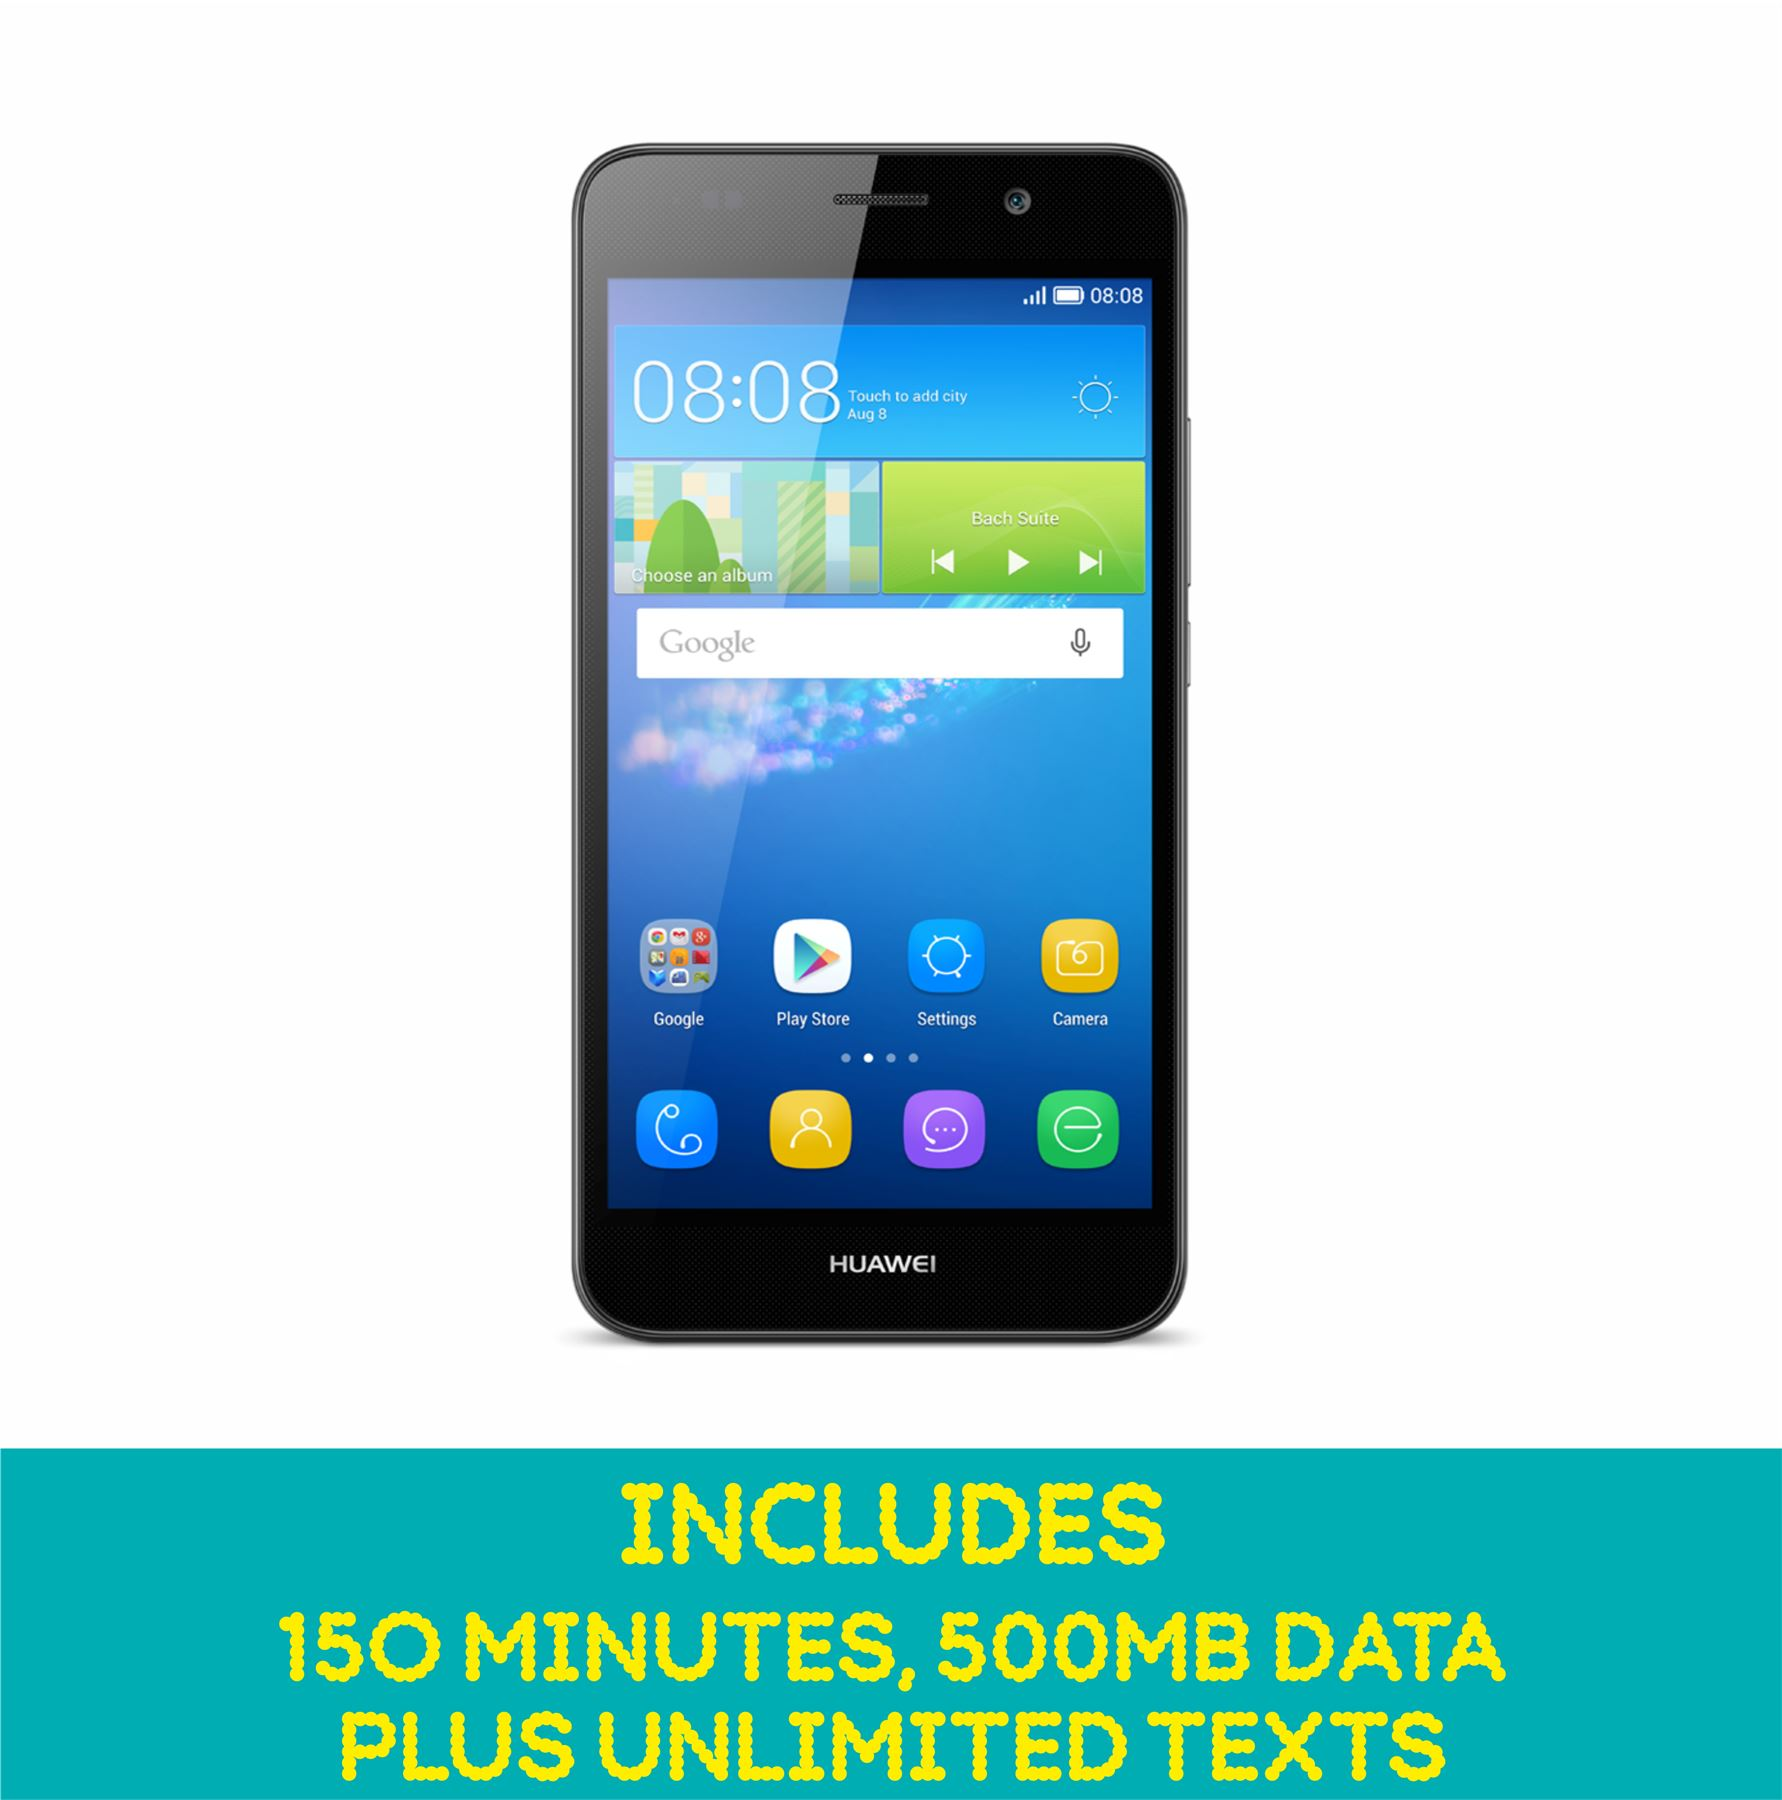 Camera Android Phones Pay As You Go huawei y5 android smartphone on ee pay as you go inc a10 credit credit